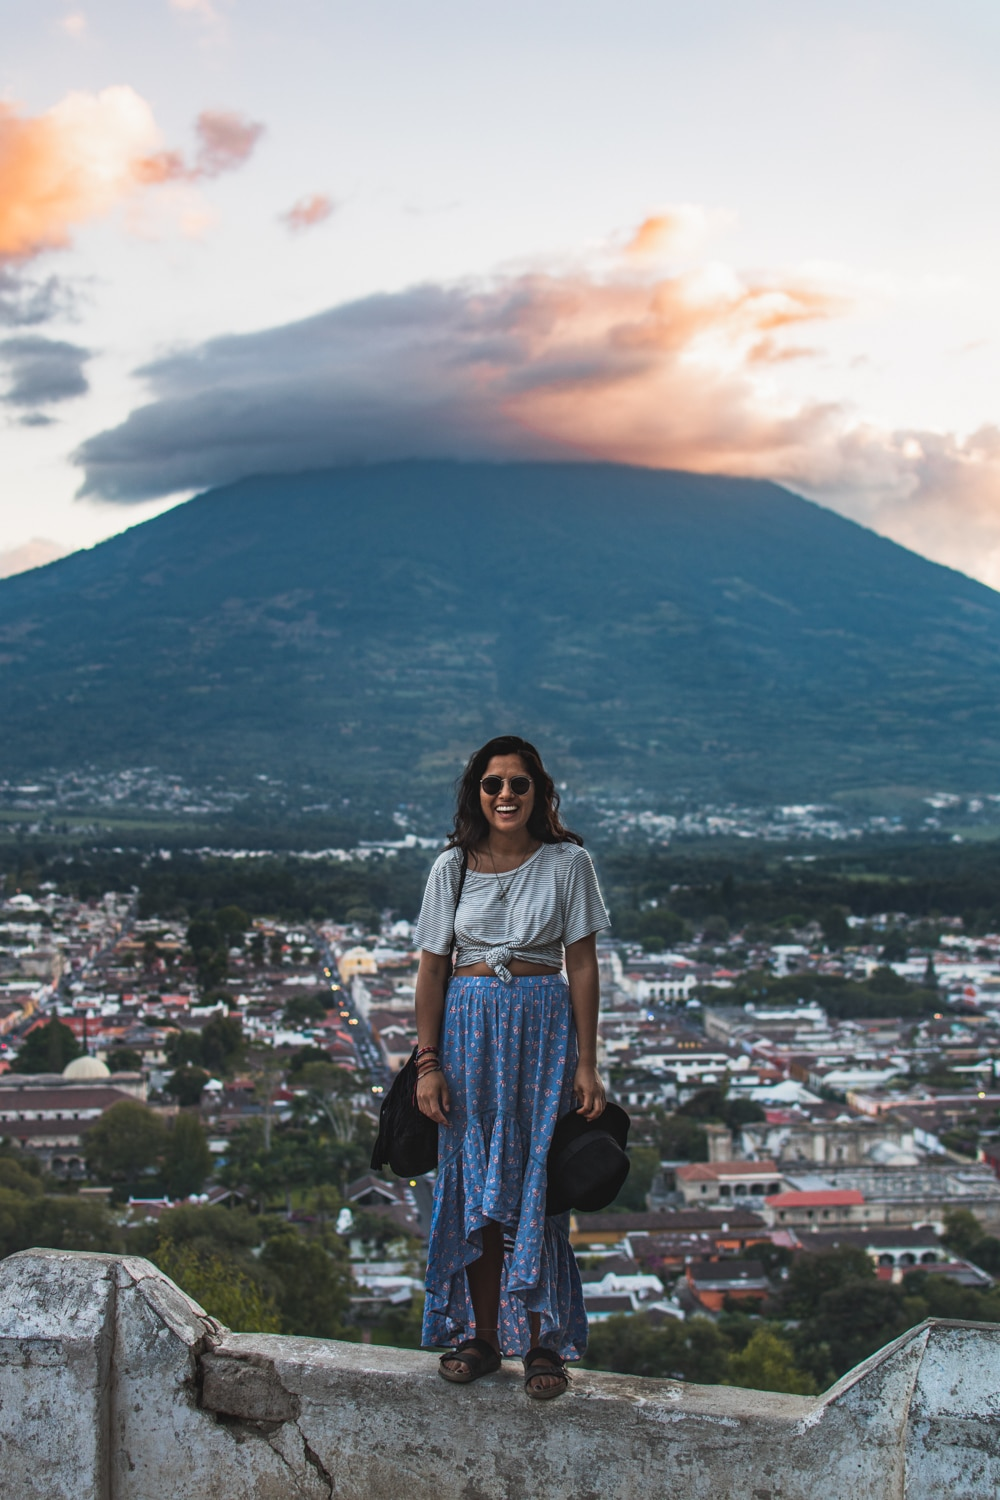 Girl at cerro de la cruz sunset